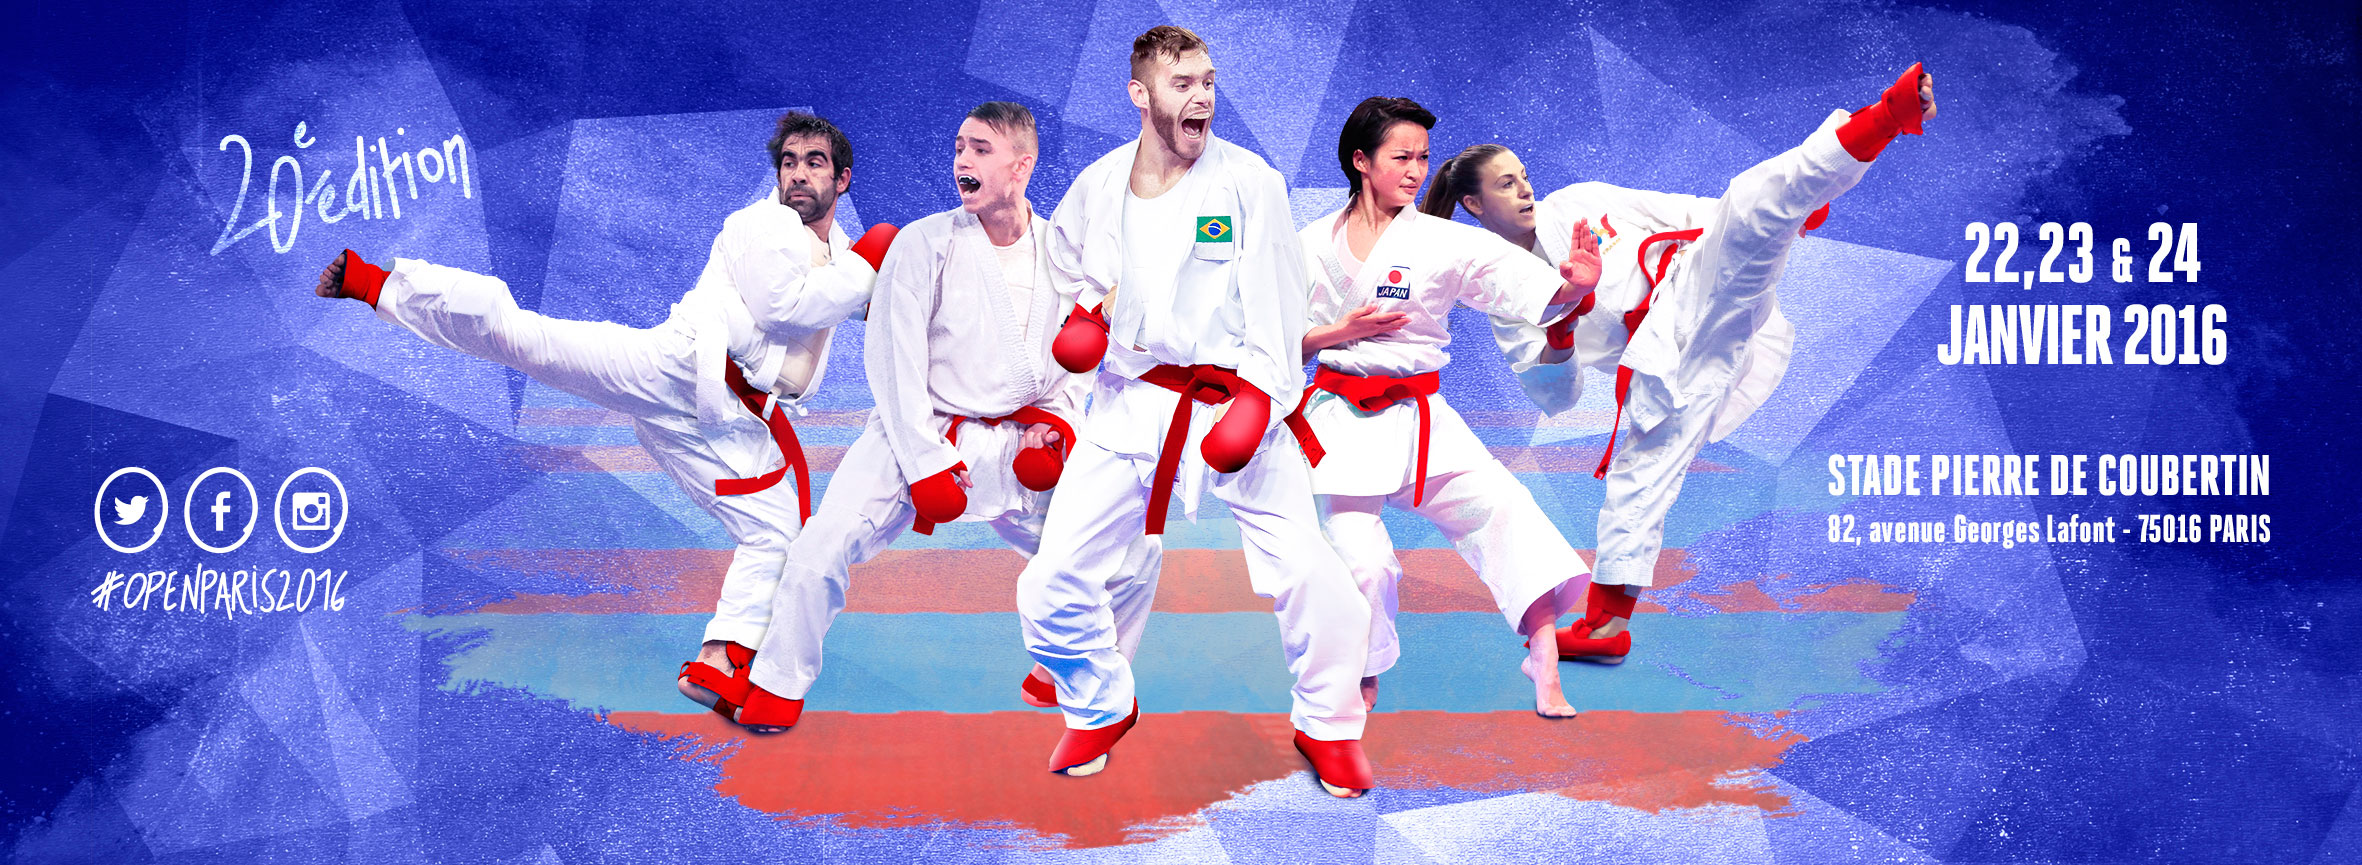 Karate1 Premier League - Paris 2016